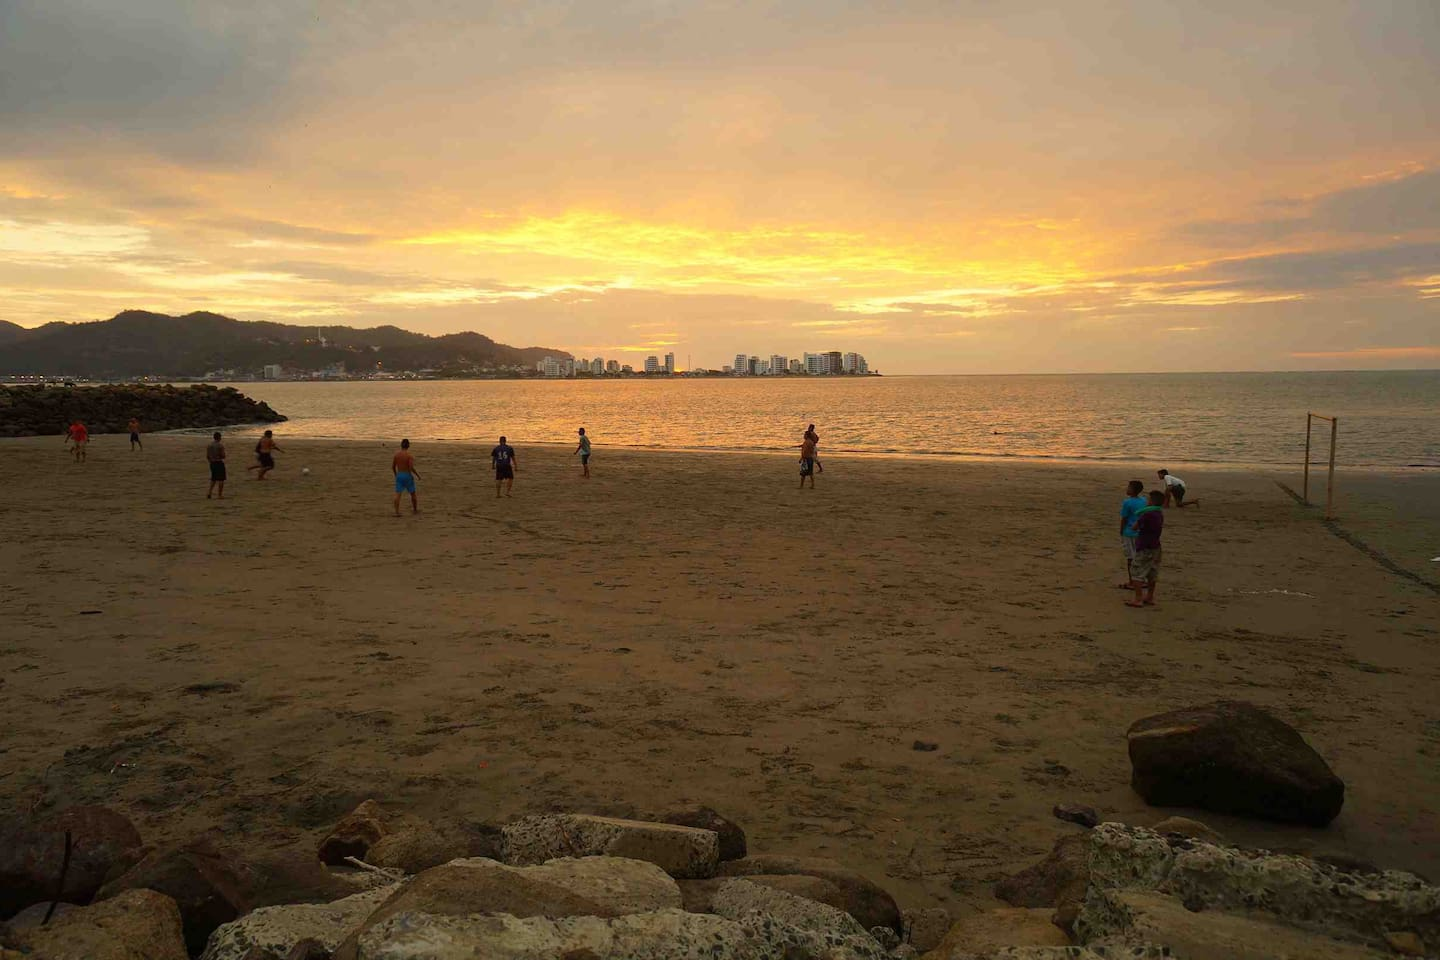 Pick up soccer game with view to Bahia from San Vicente